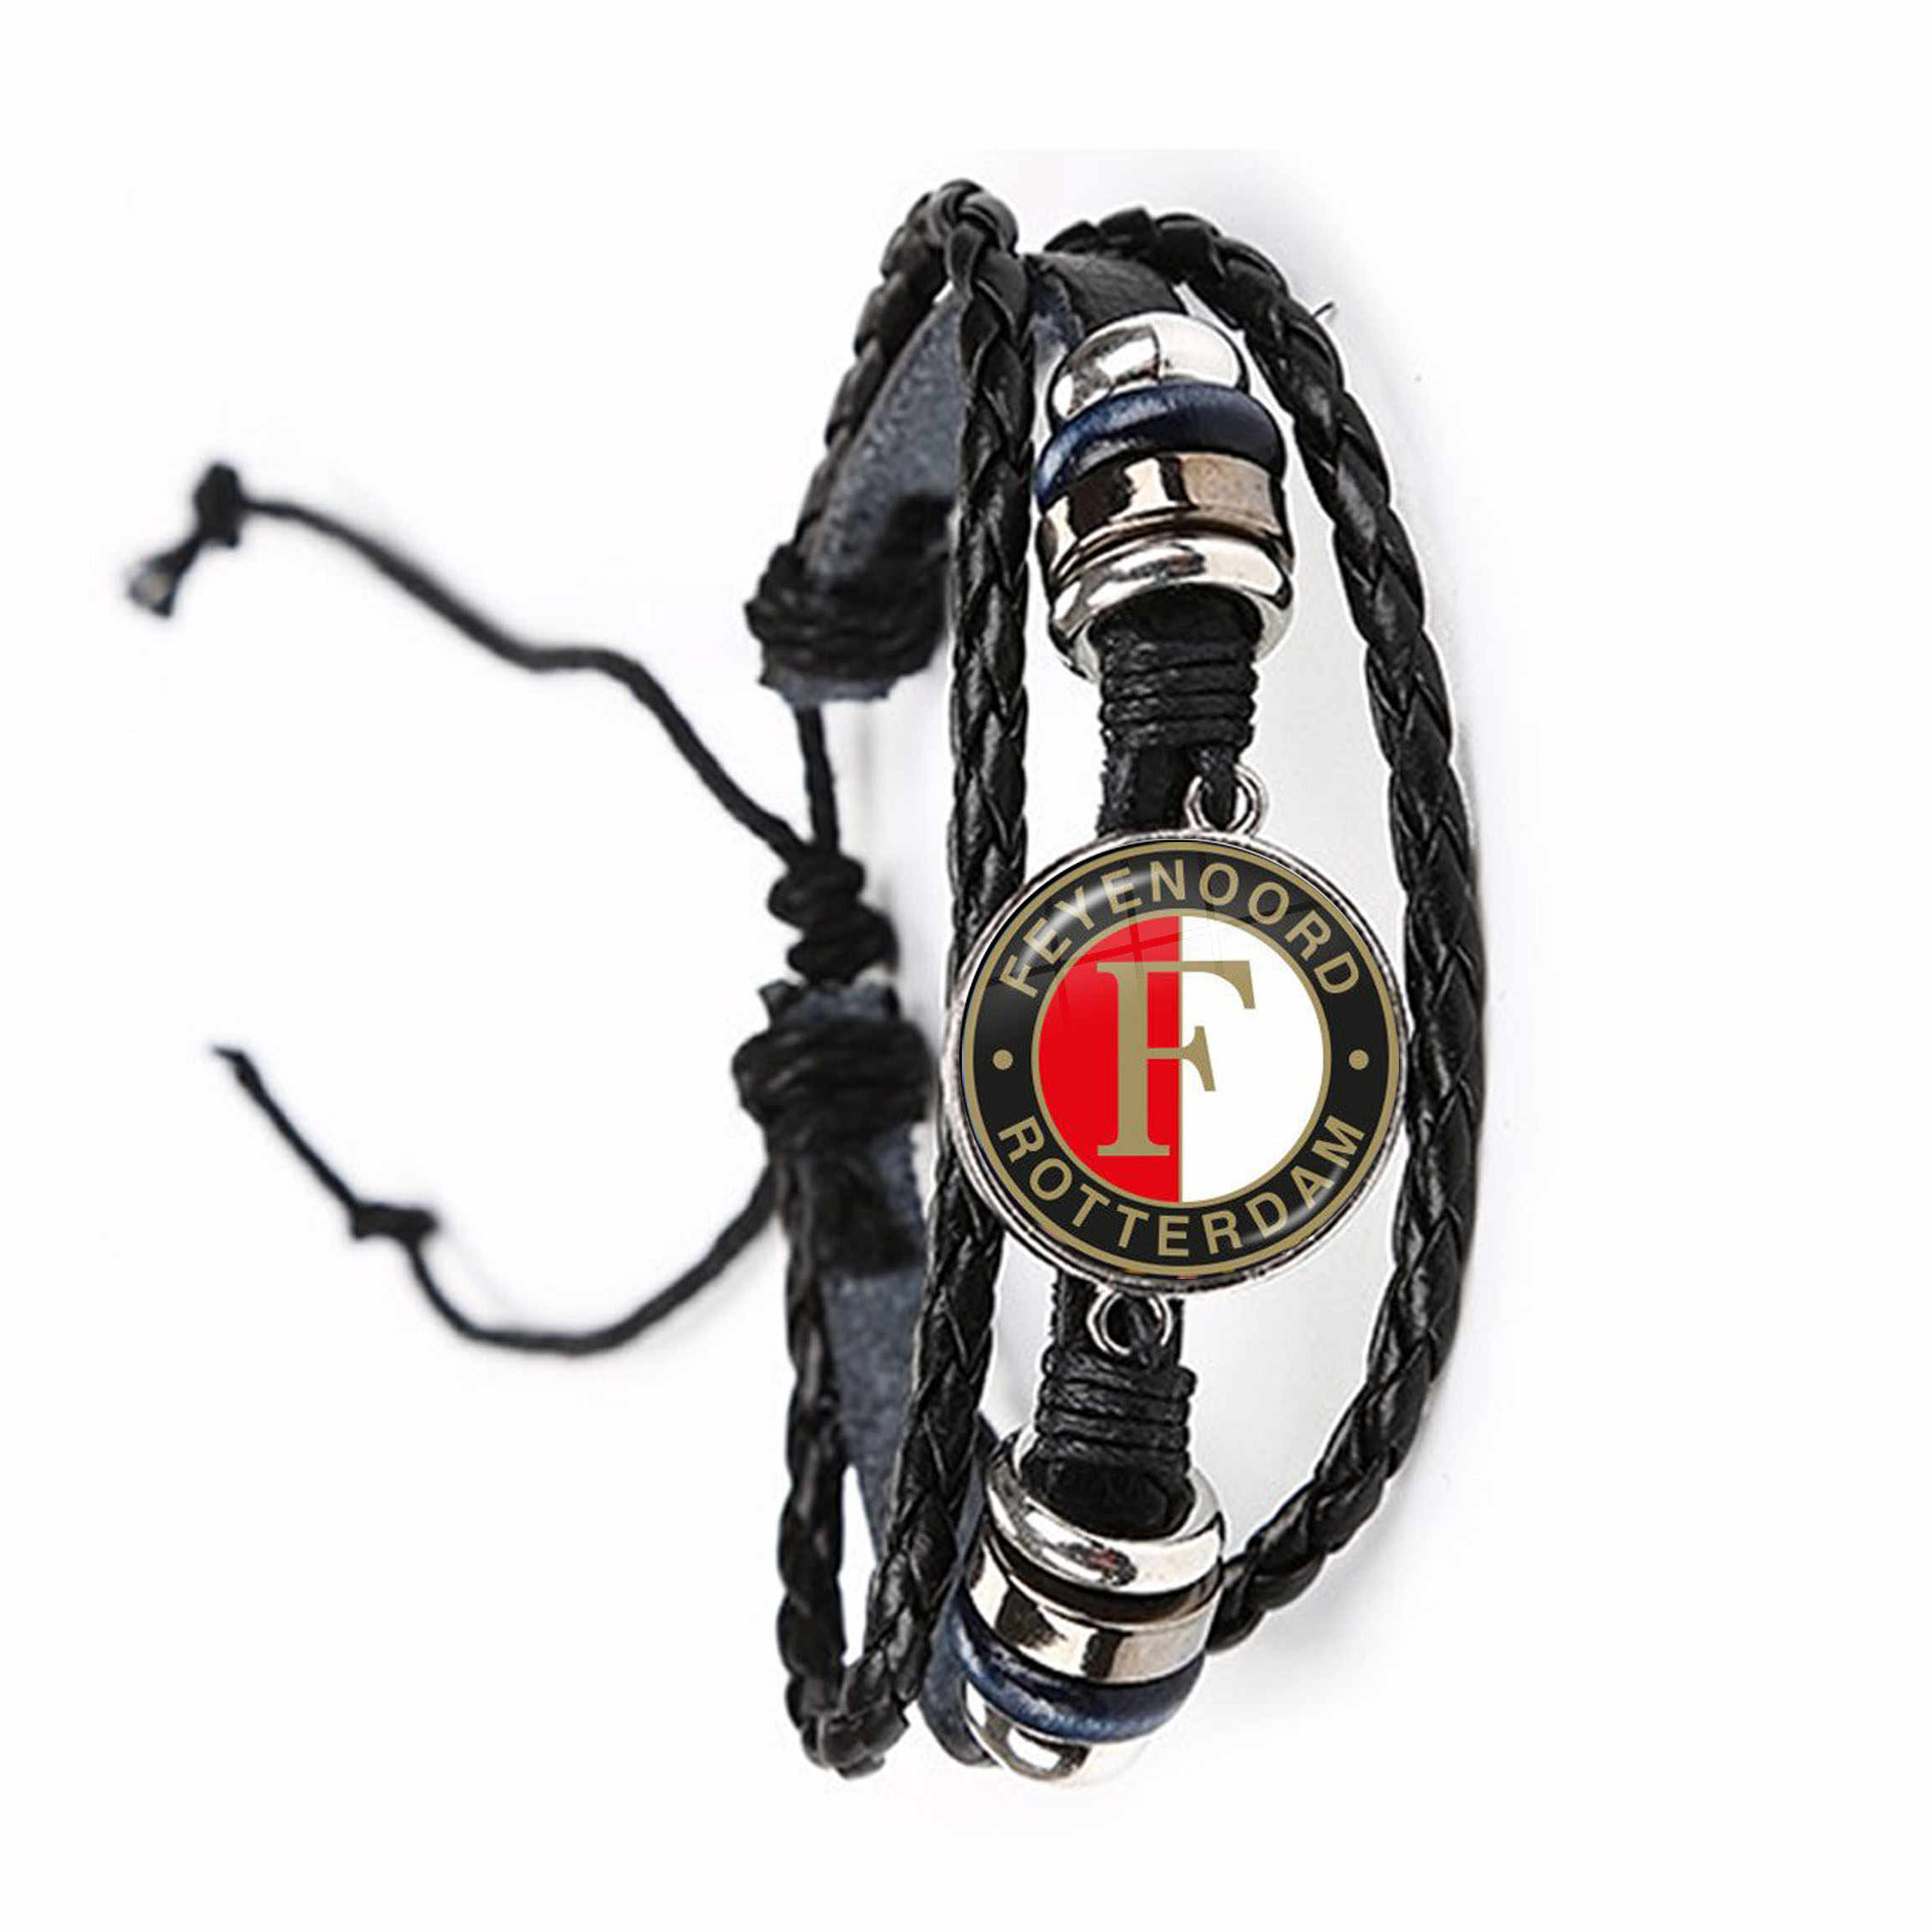 Feyenoord Rotterd Voetbalclub Glas Cabochon Armband Voetbal Competities Logo Voetbal Club Zwart Lederen Bangle Voor Fans Gift